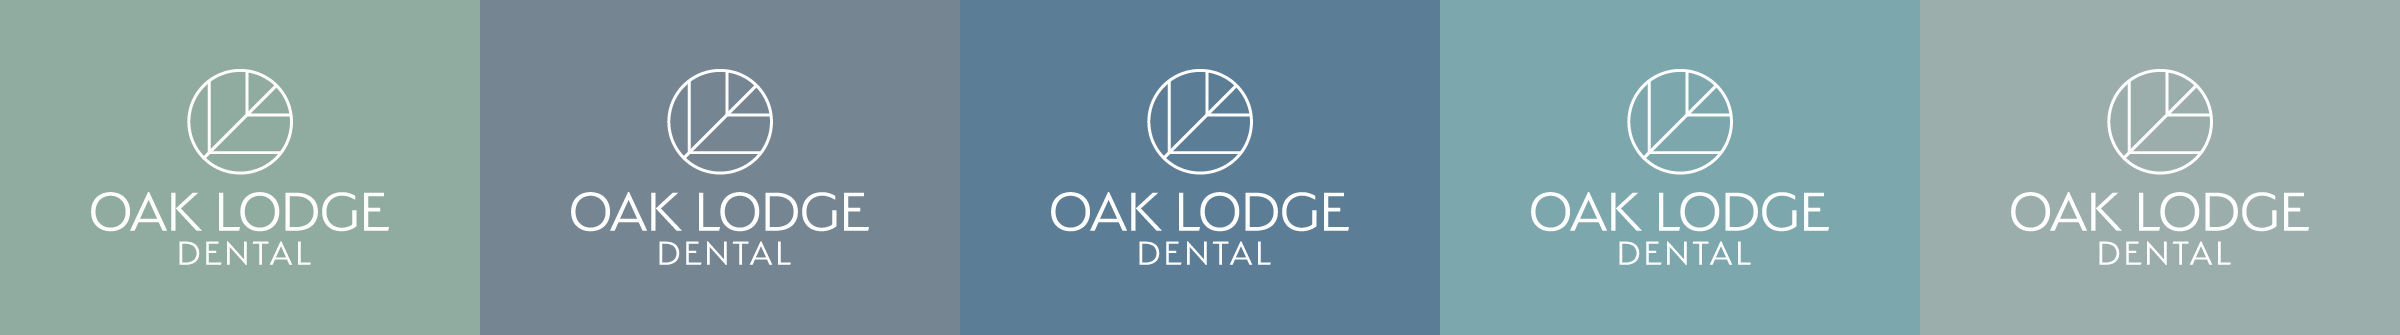 Oak Lodge Dental brand